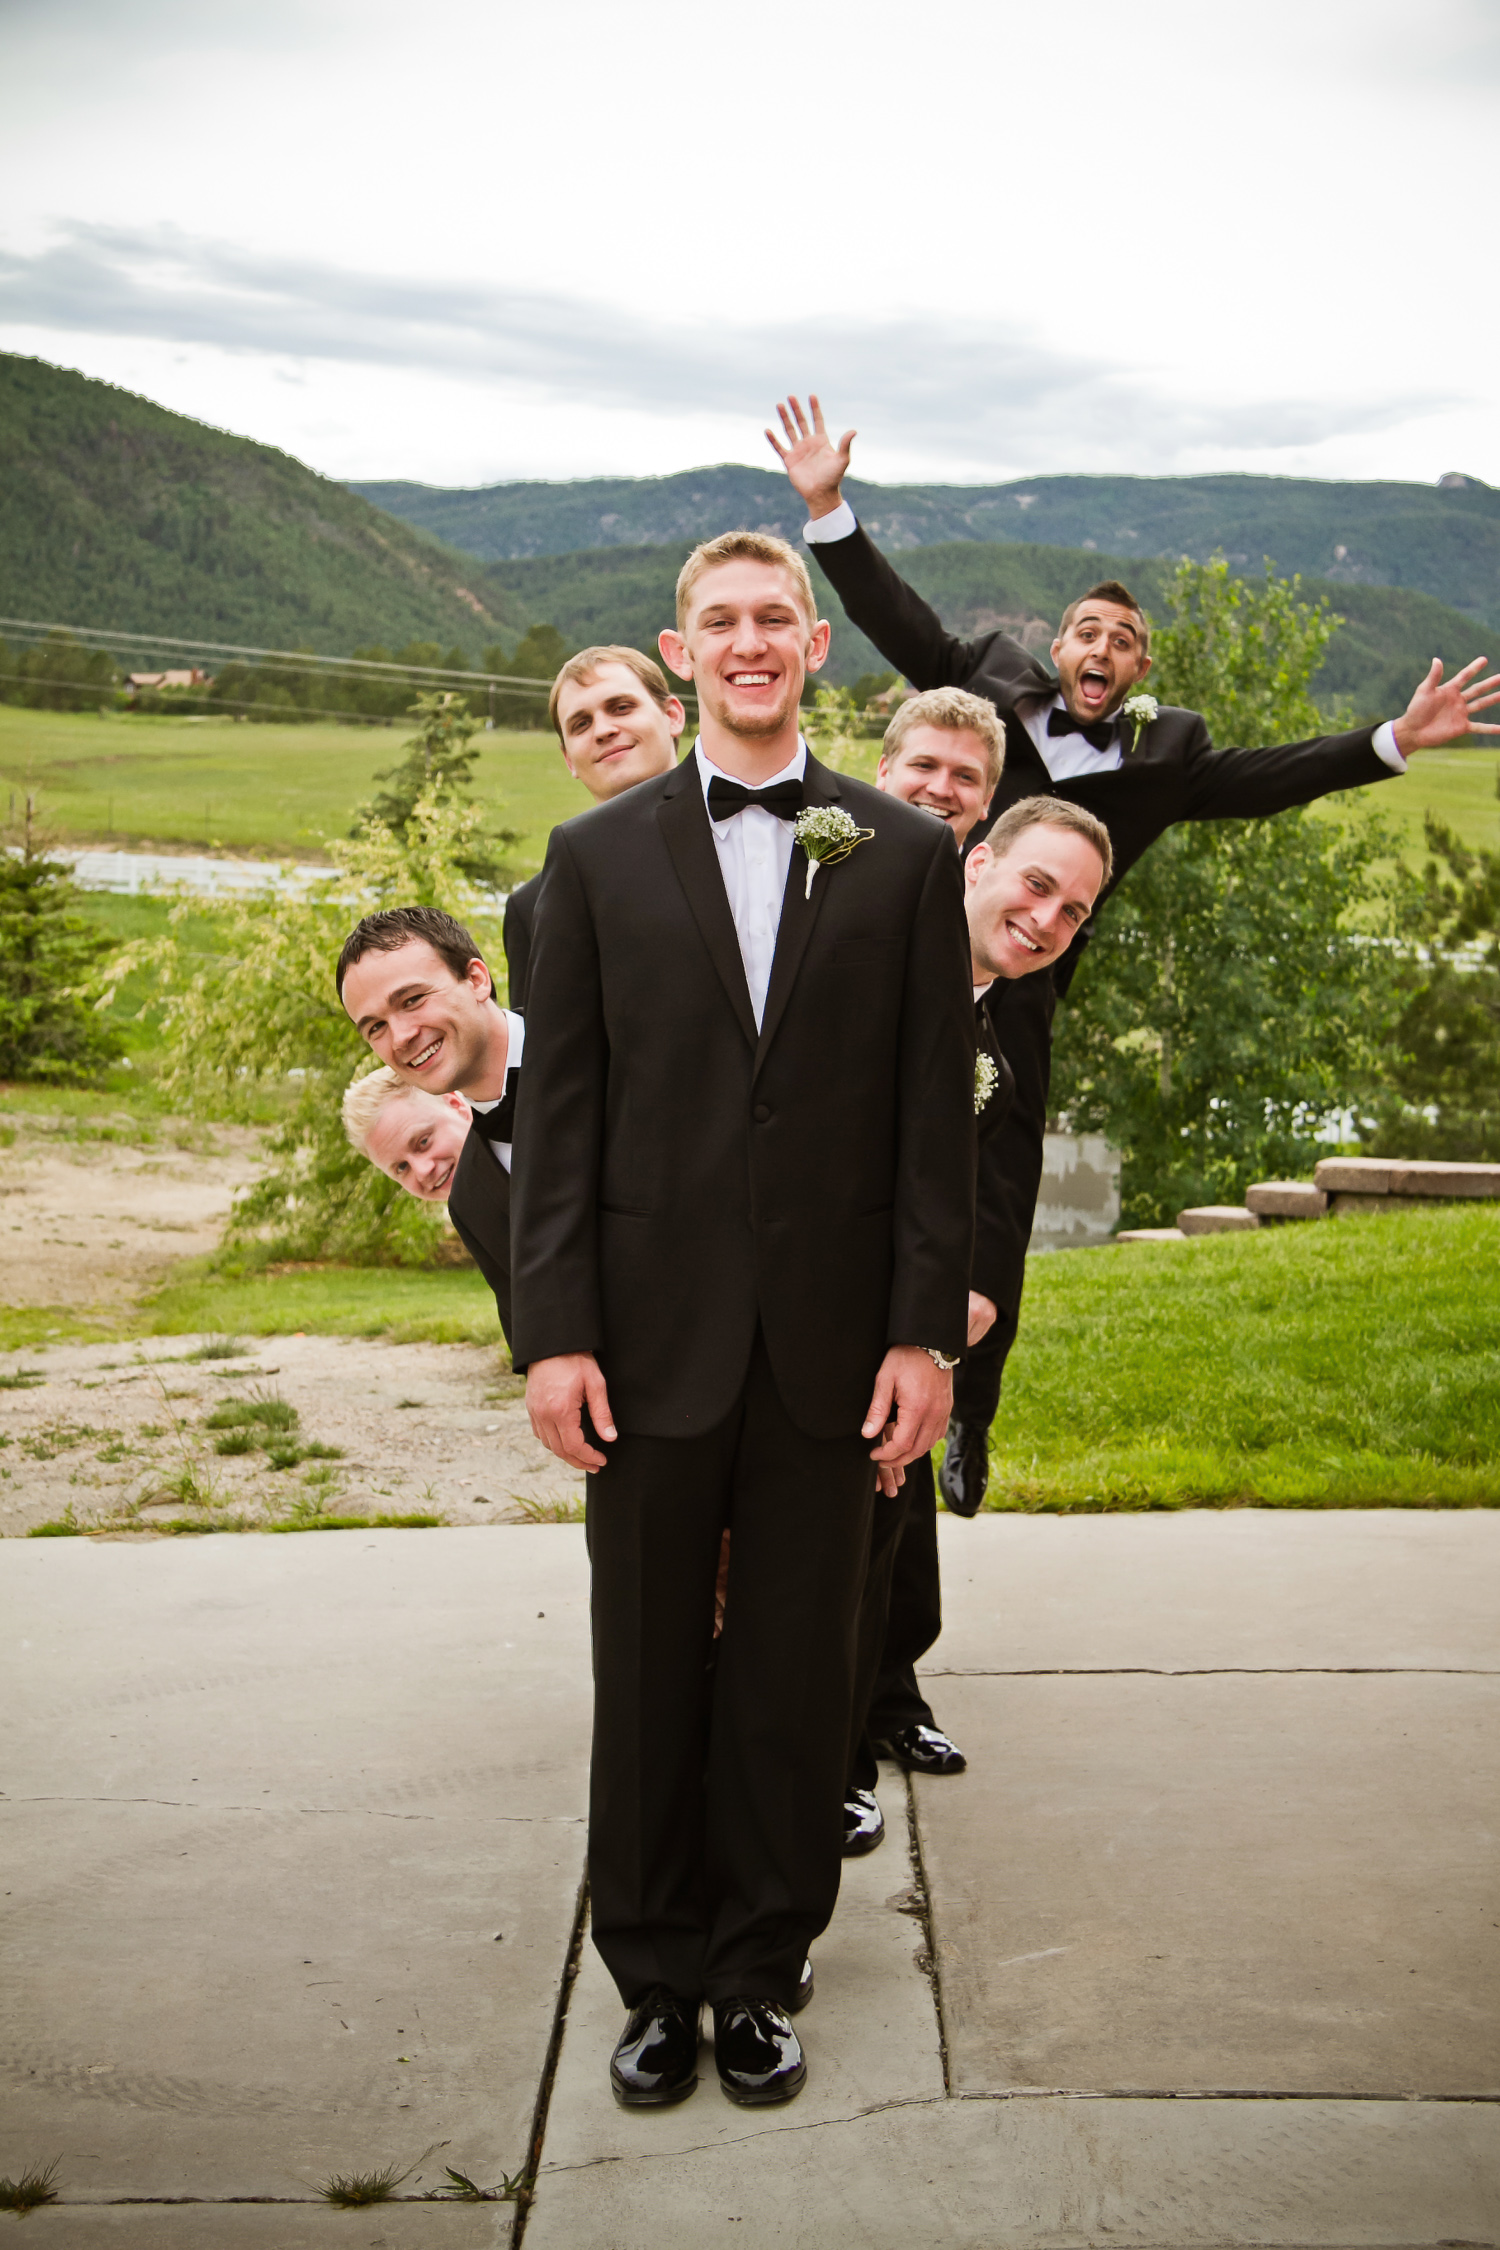 Crooked_Willow_Farms_Wedding_020.JPG